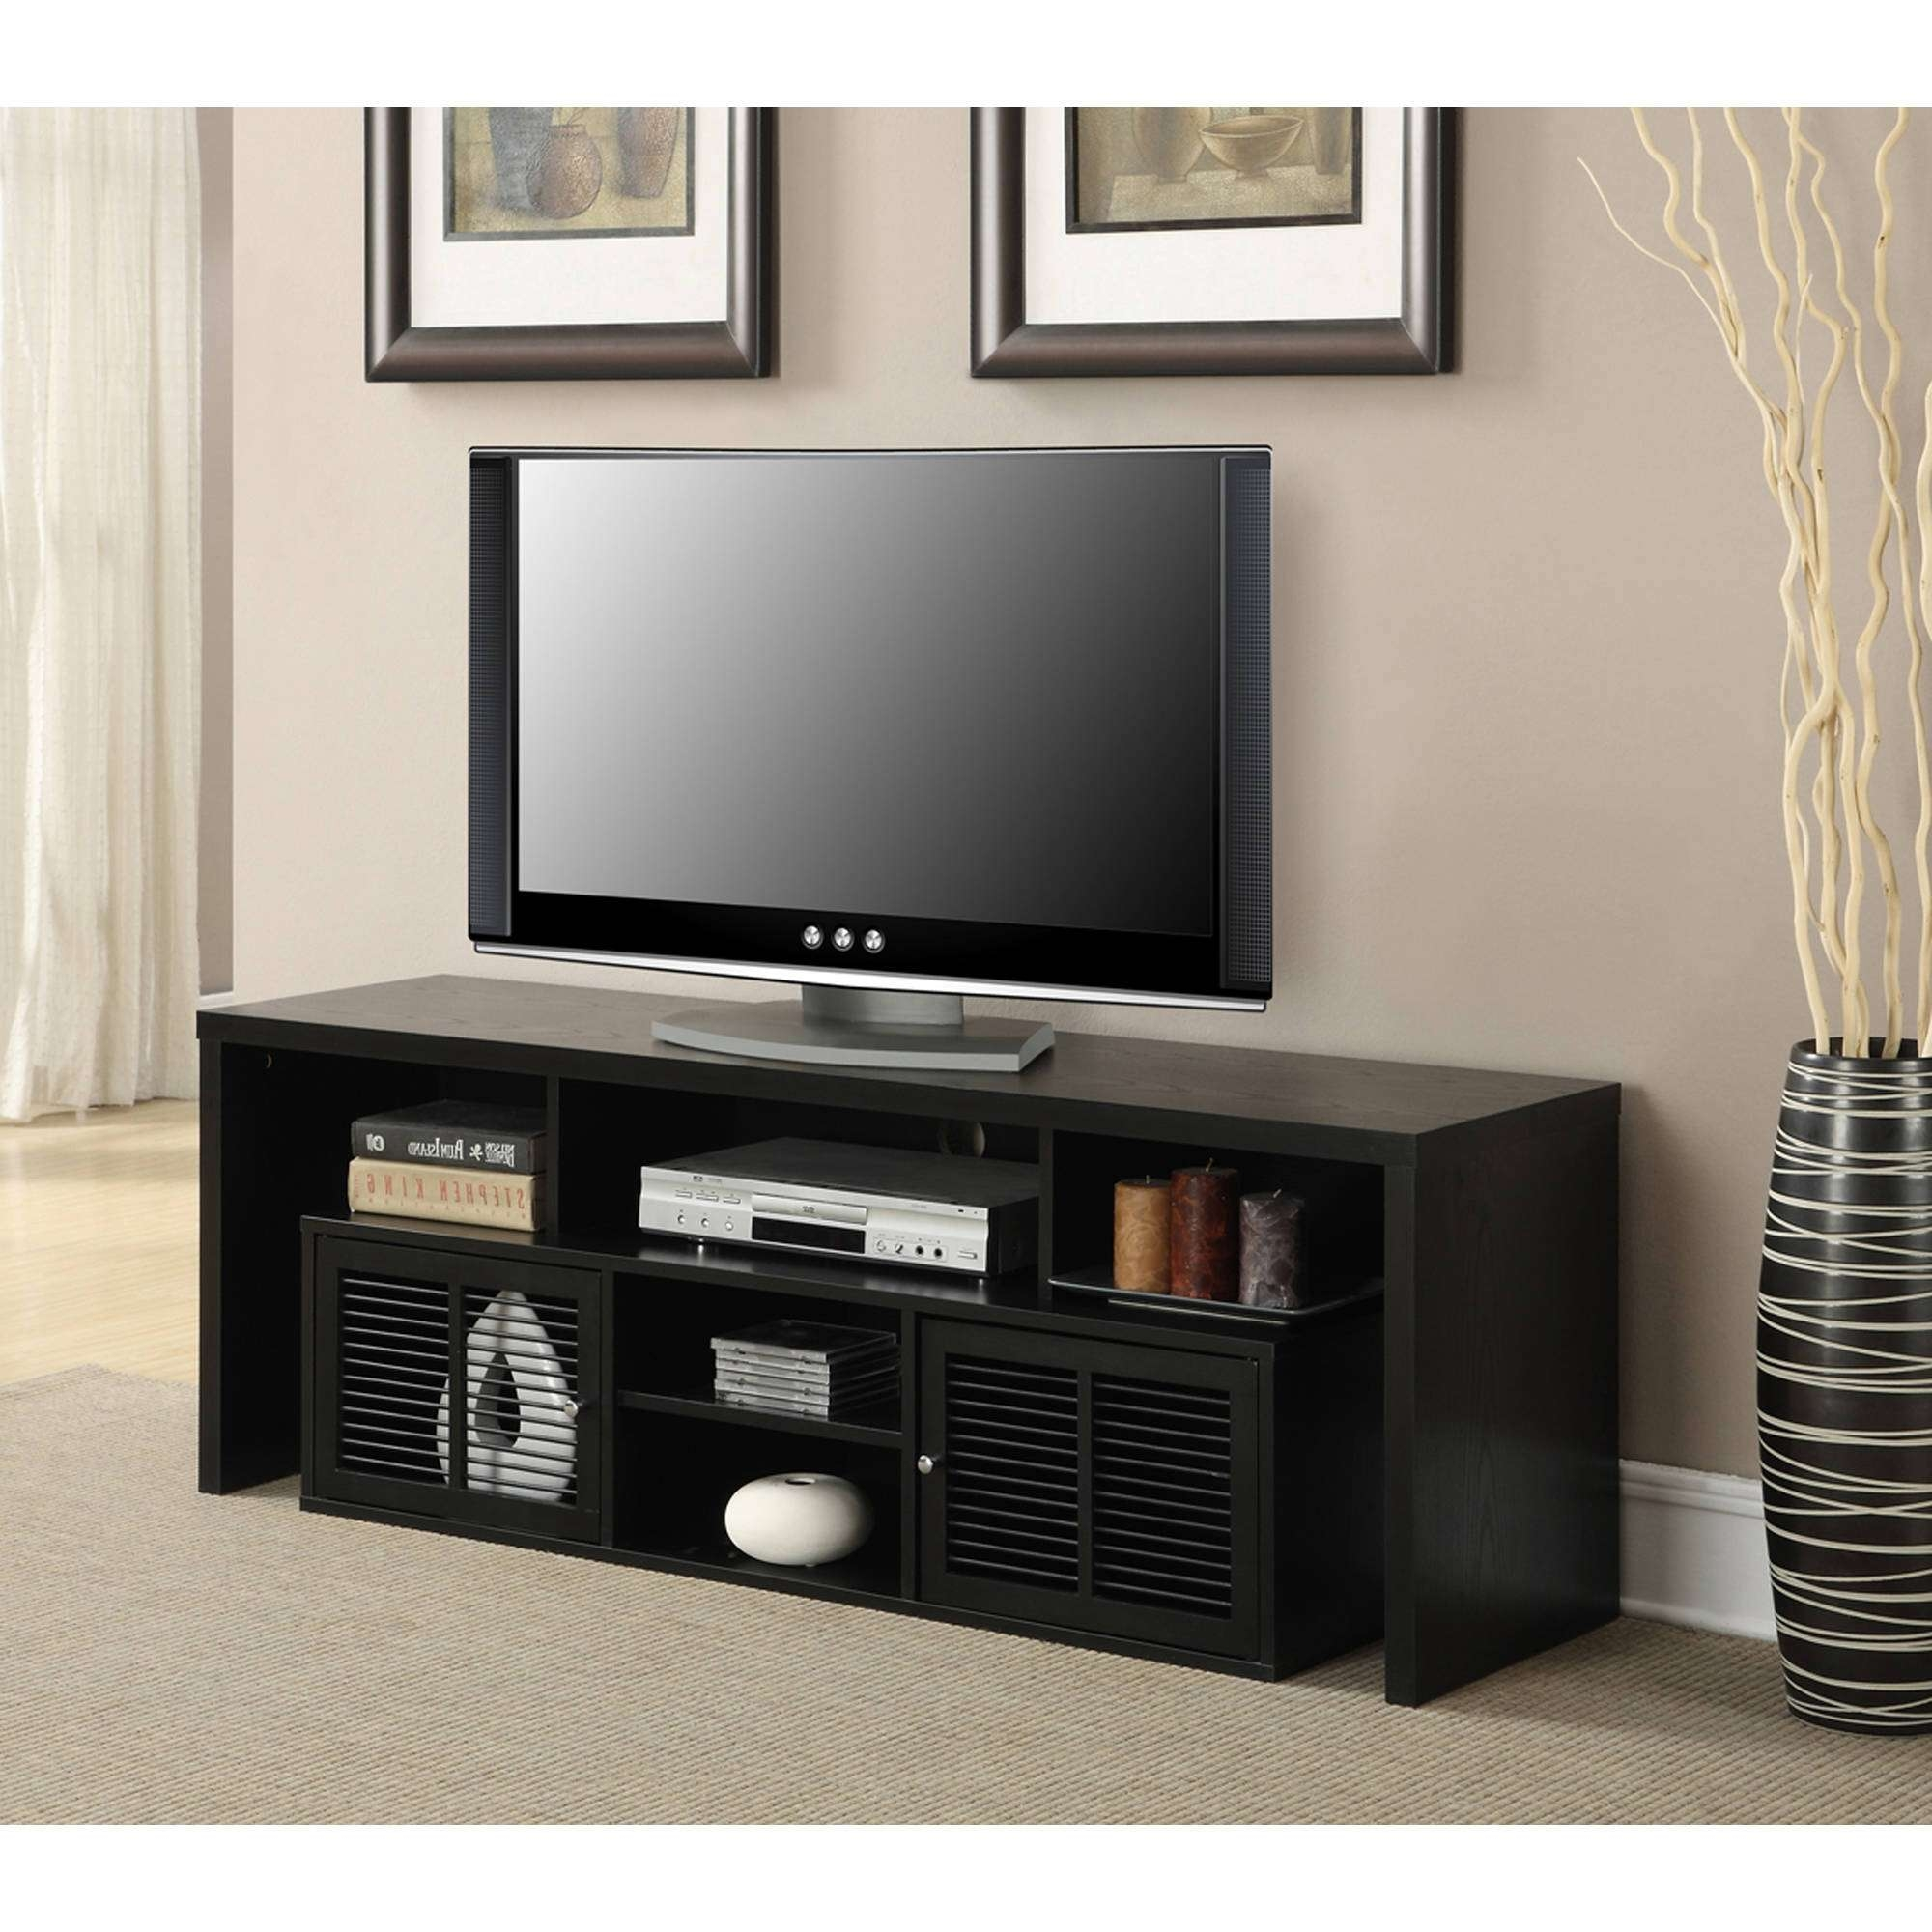 Tv : Home Loft Concept Tv Stands Miraculous Home Loft Concept In Home Loft Concept Tv Stands (View 2 of 15)